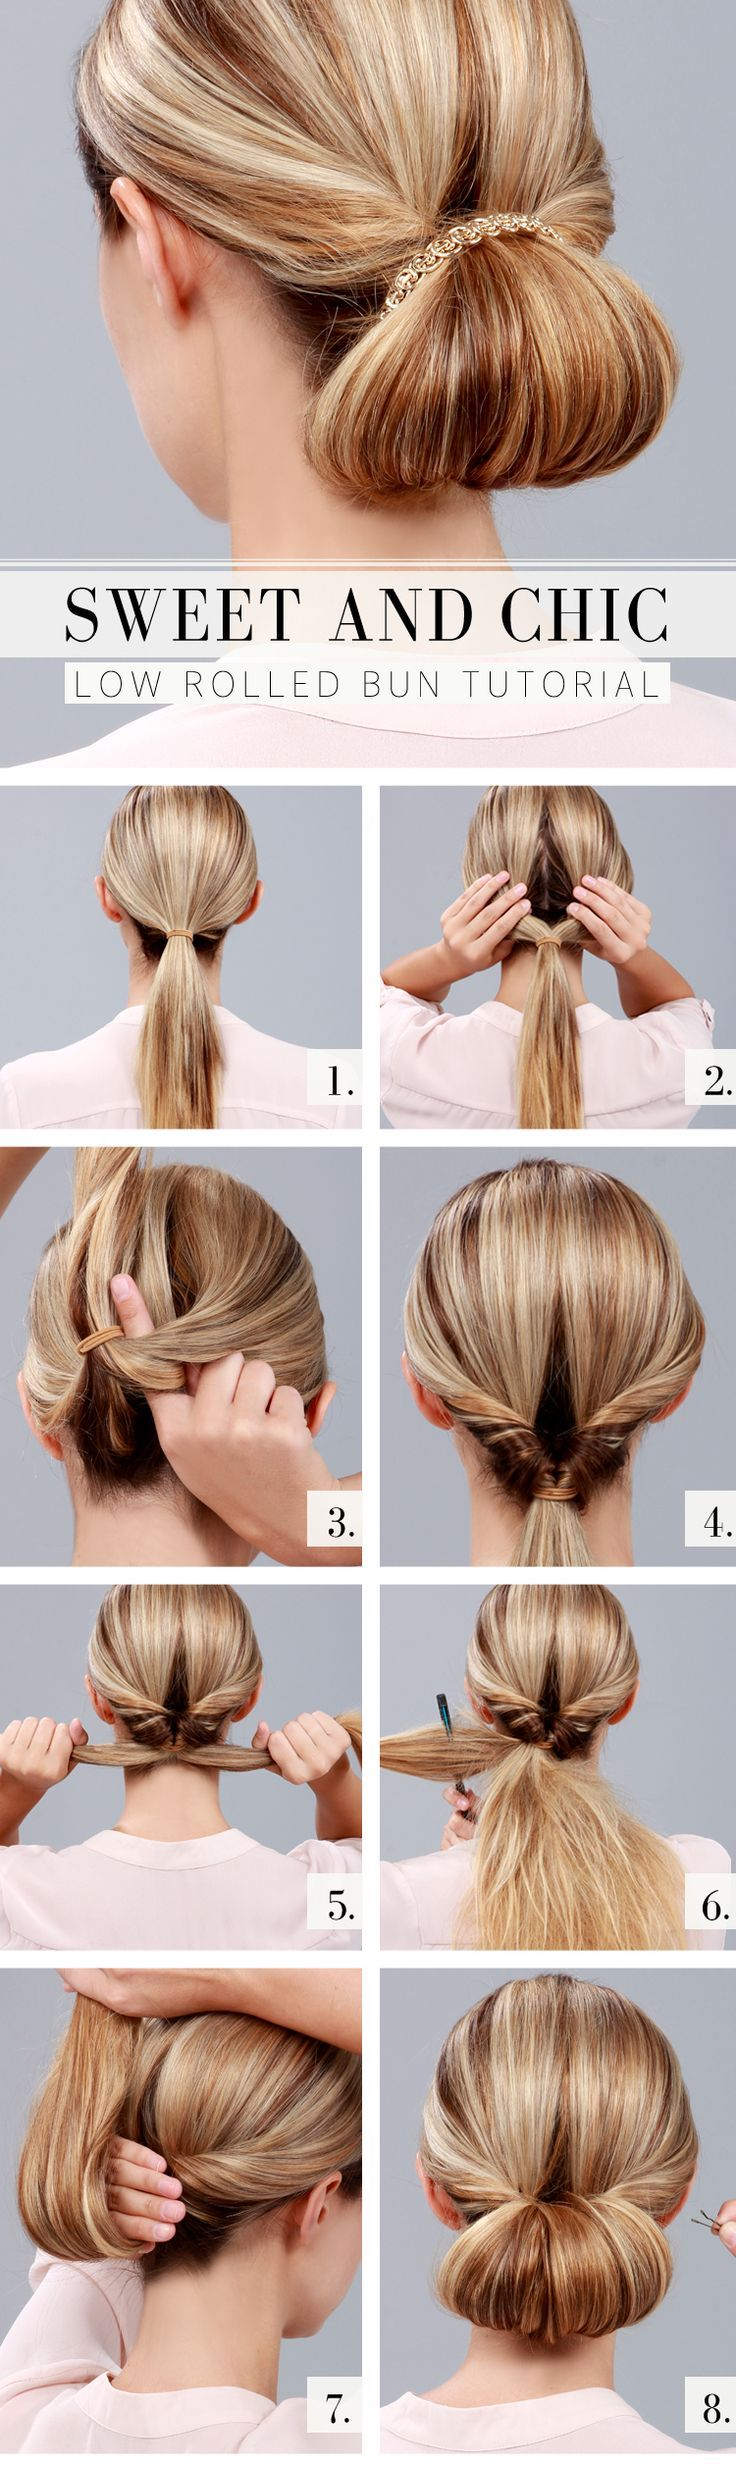 How-To: Chic Low Rolled Bun Tutorial!